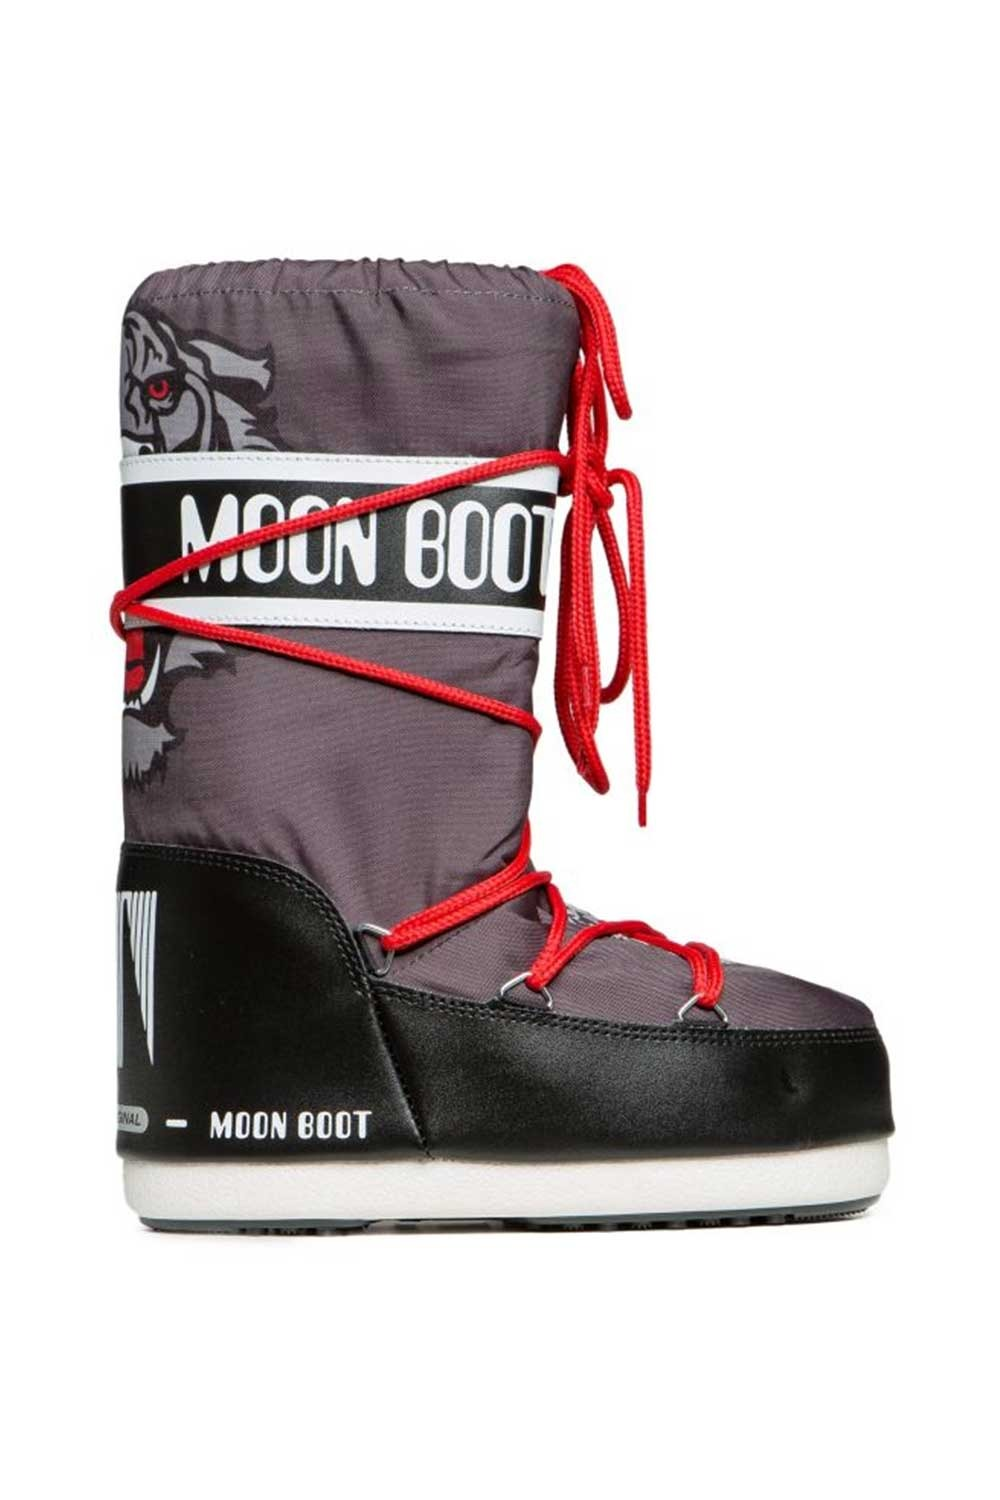 문부츠 키즈 방한부츠 JR 보이 타이거_MOONBOOT YOUTH MOON BOOT JR BOY TIGER_BLACK/ANTHRACITE_VMQ875BK_AVMQ875BK